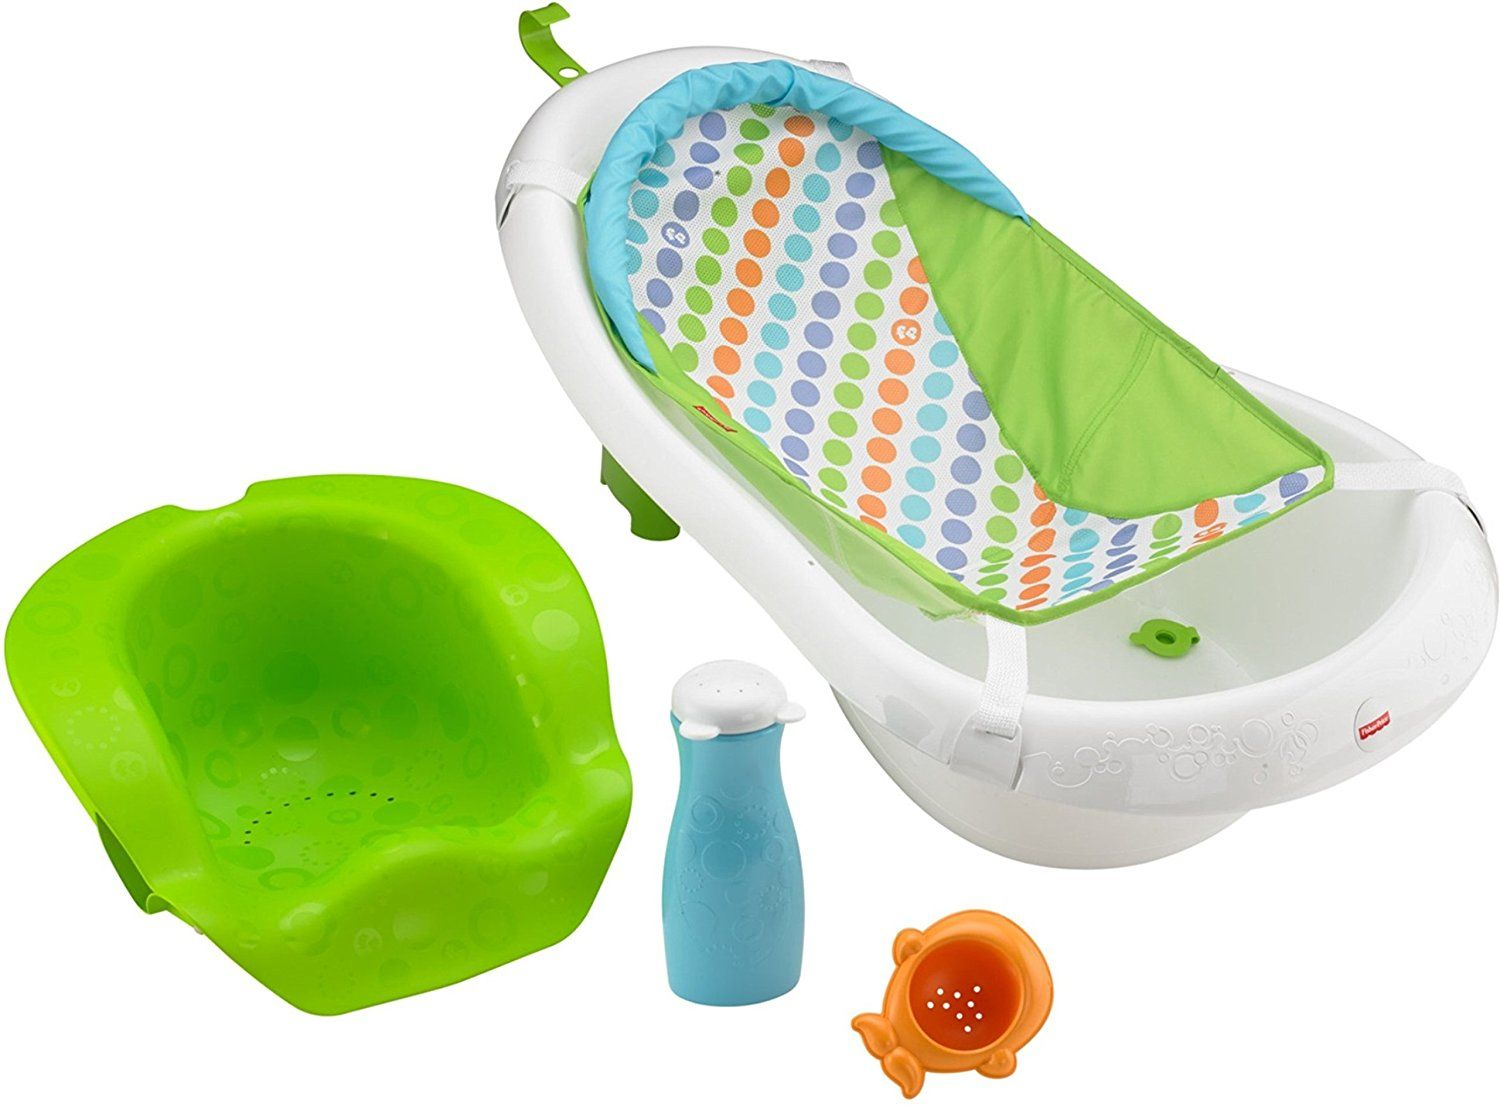 10 Best Babies Bath Seats - omy9 Reviews | Baby bath seat, Bath ...